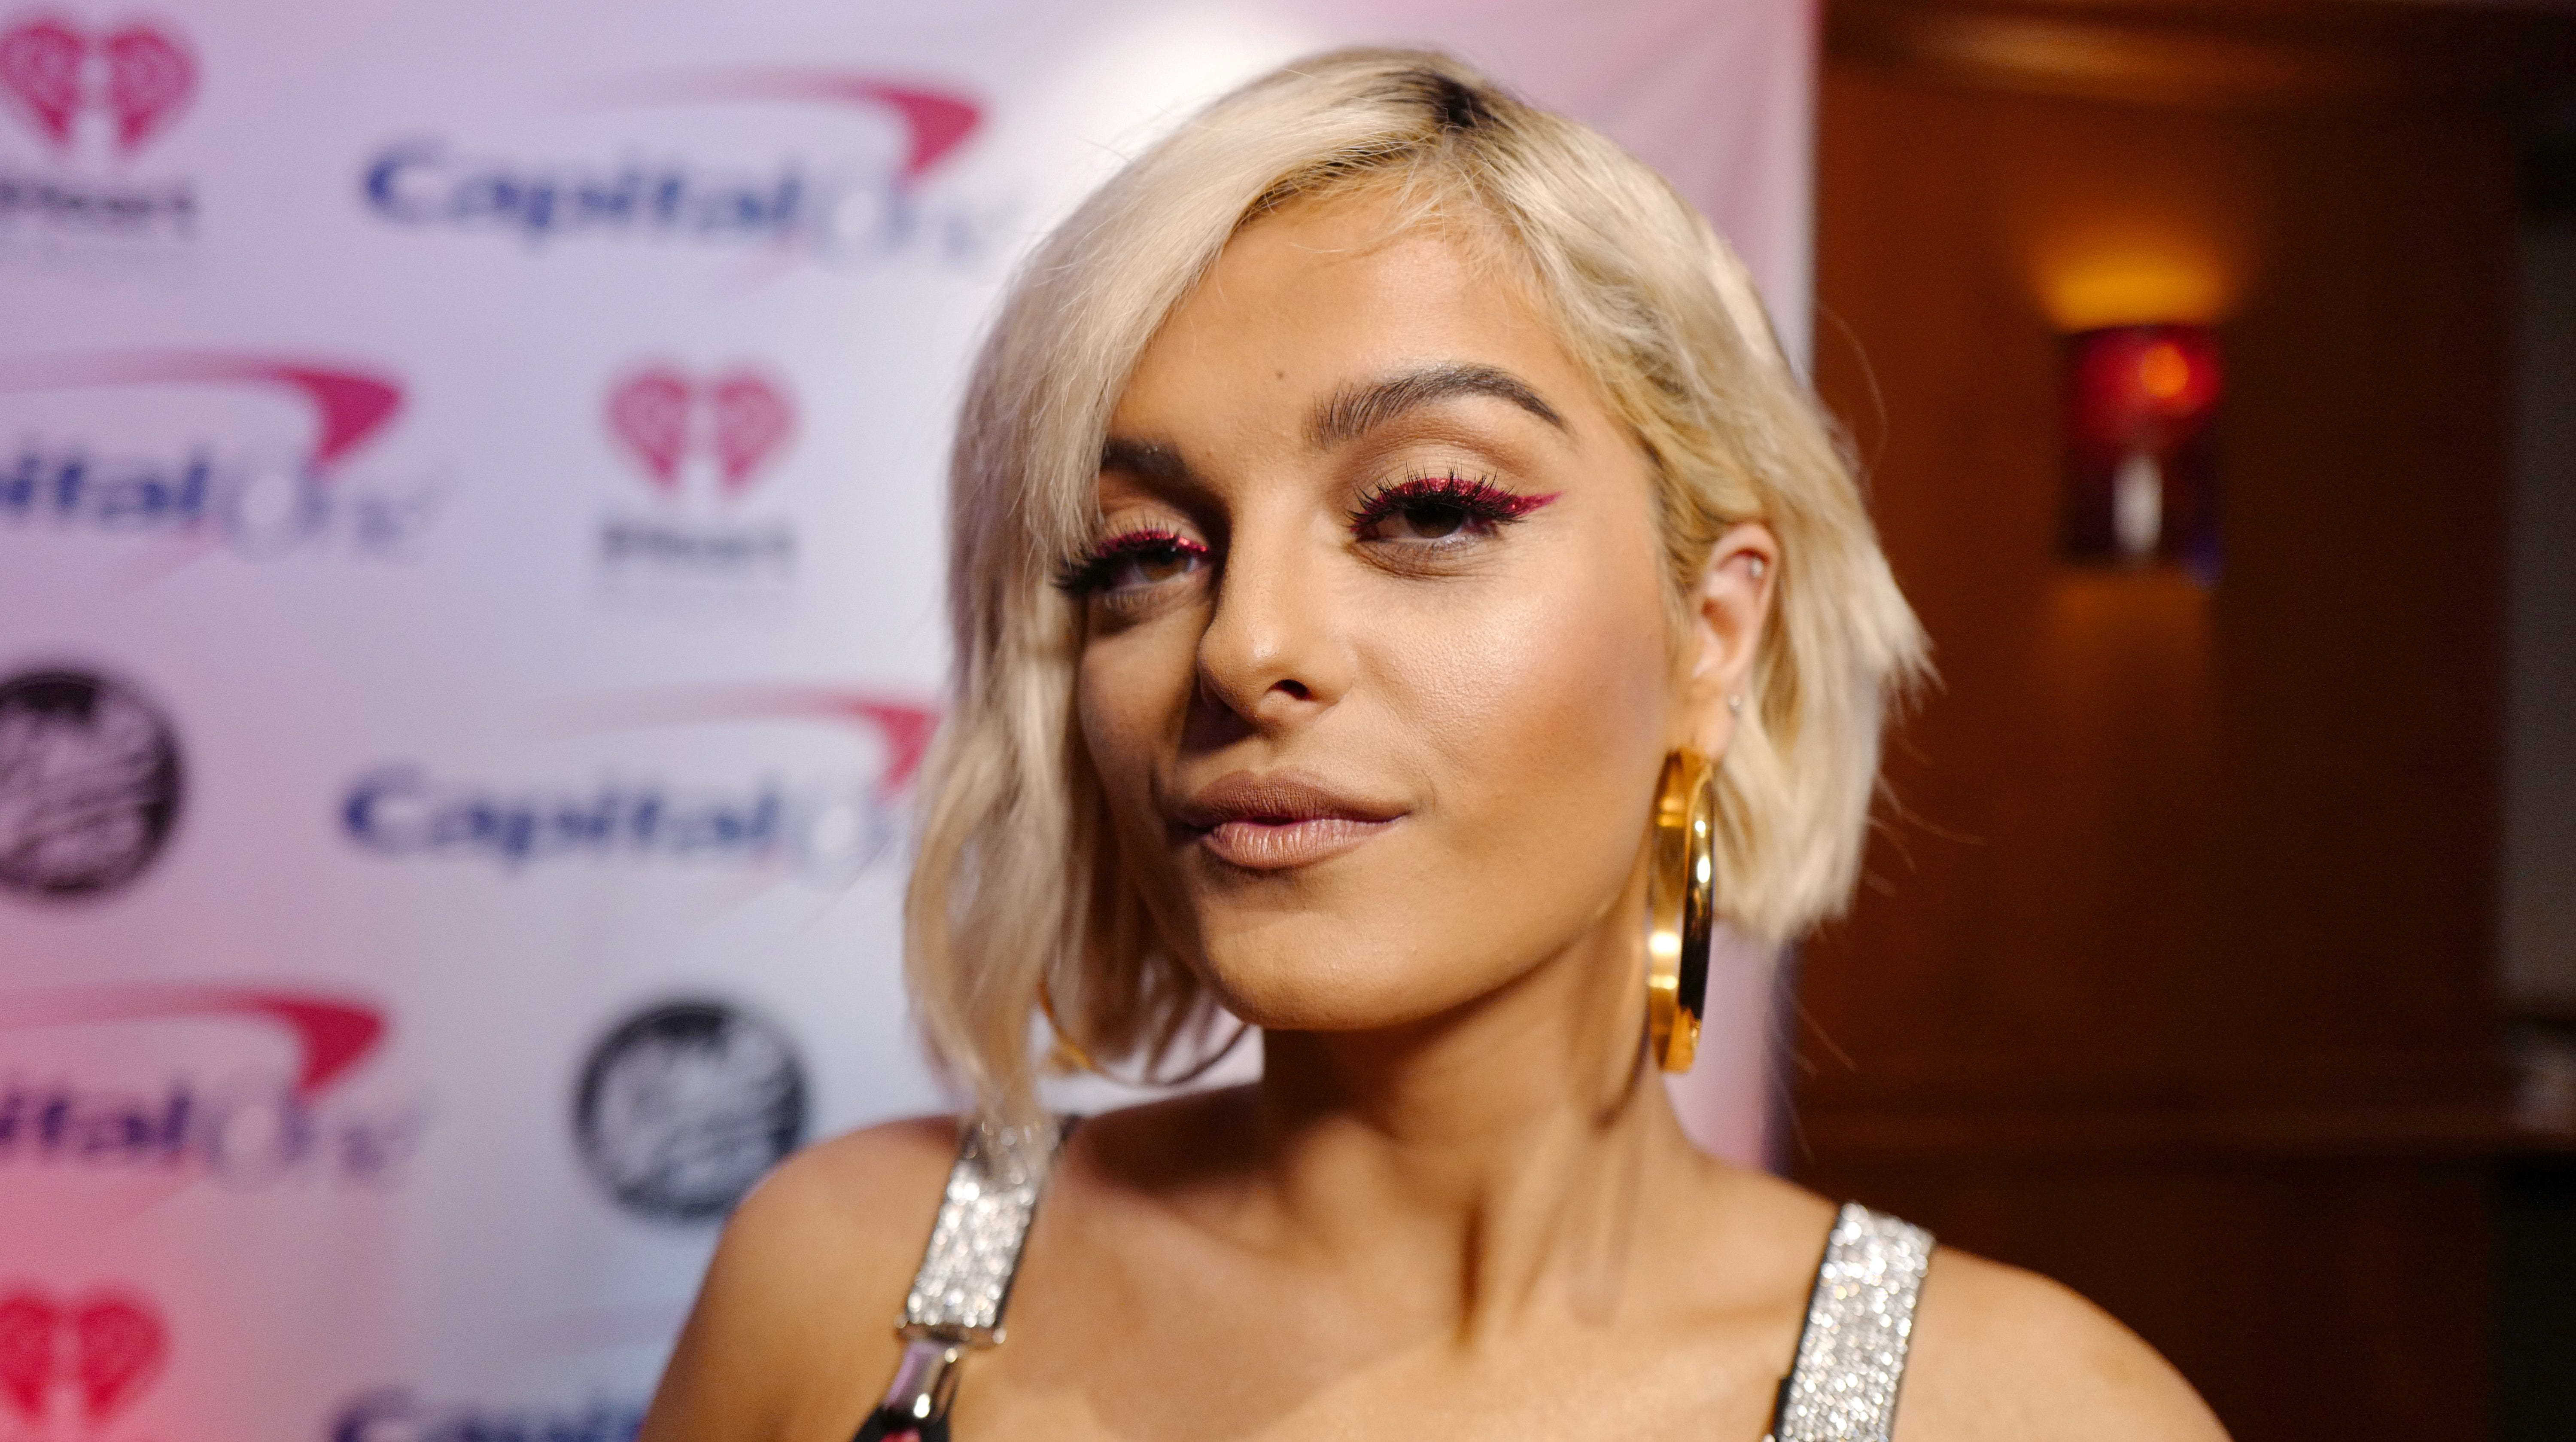 ST PAUL, MN - DECEMBER 03: Bebe Rexha attends 101.3 KDWB's Jingle Ball 2018 at Xcel Energy Center on December 3, 2018 in St Paul, Minnesota. (Photo by Adam Bettcher/Getty Images for iHeartMedia) ORG XMIT: 775263490 ORIG FILE ID: 1068185214